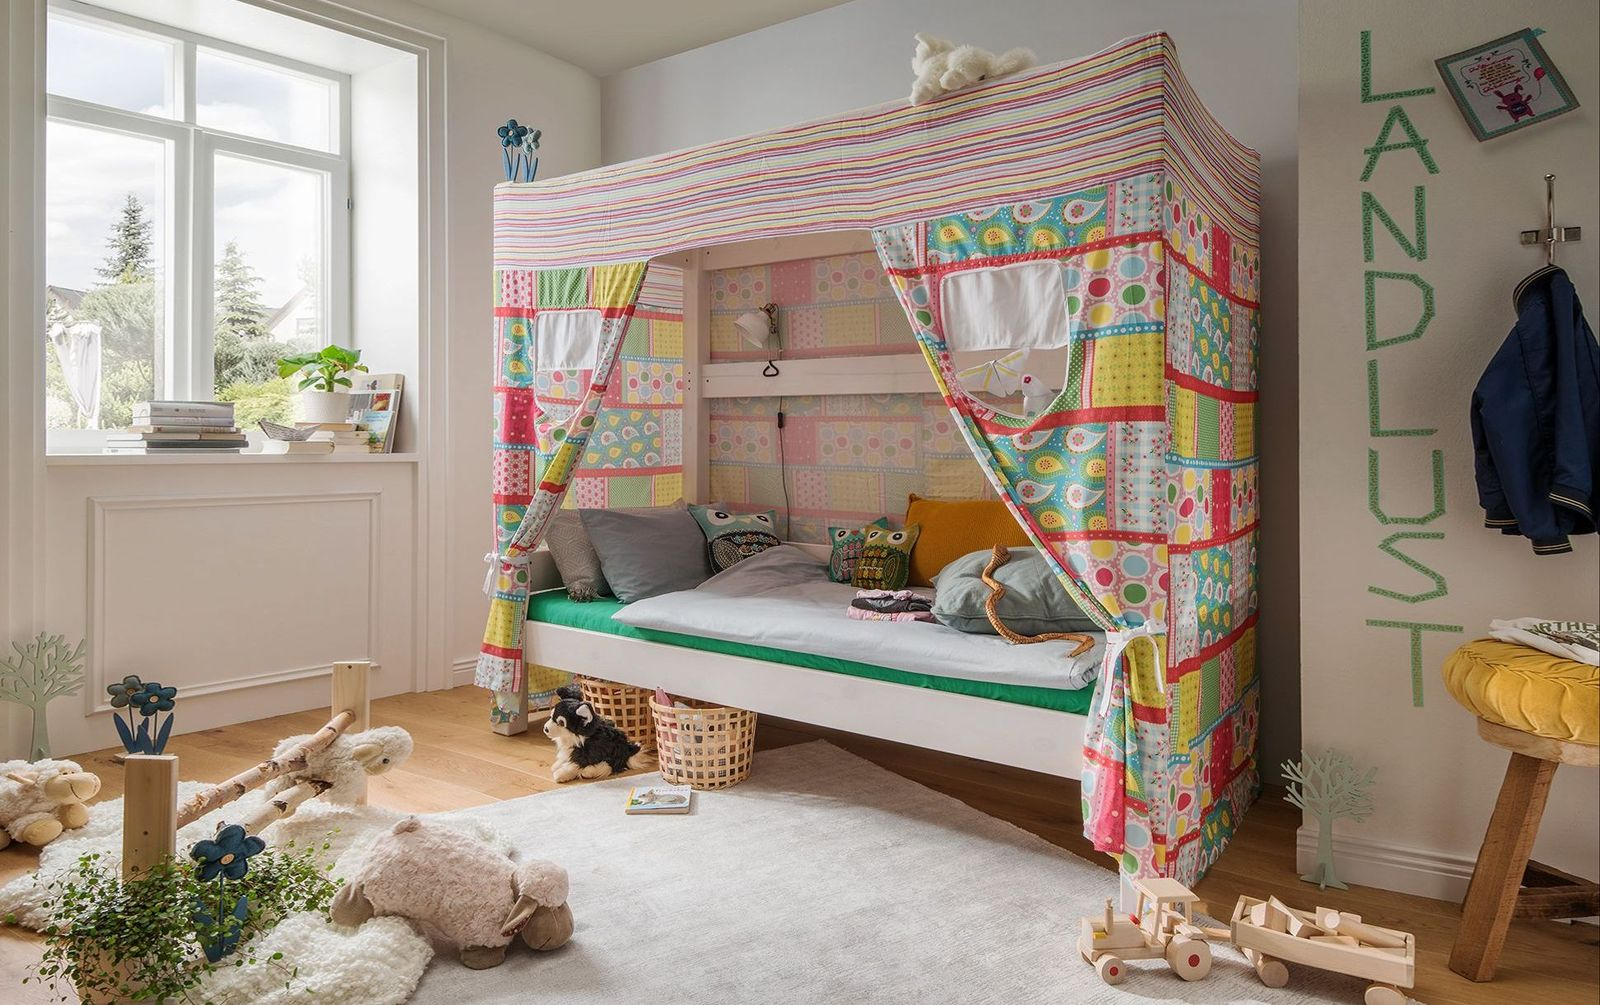 Himmelbett Kids Dreams aus massiver Kiefer